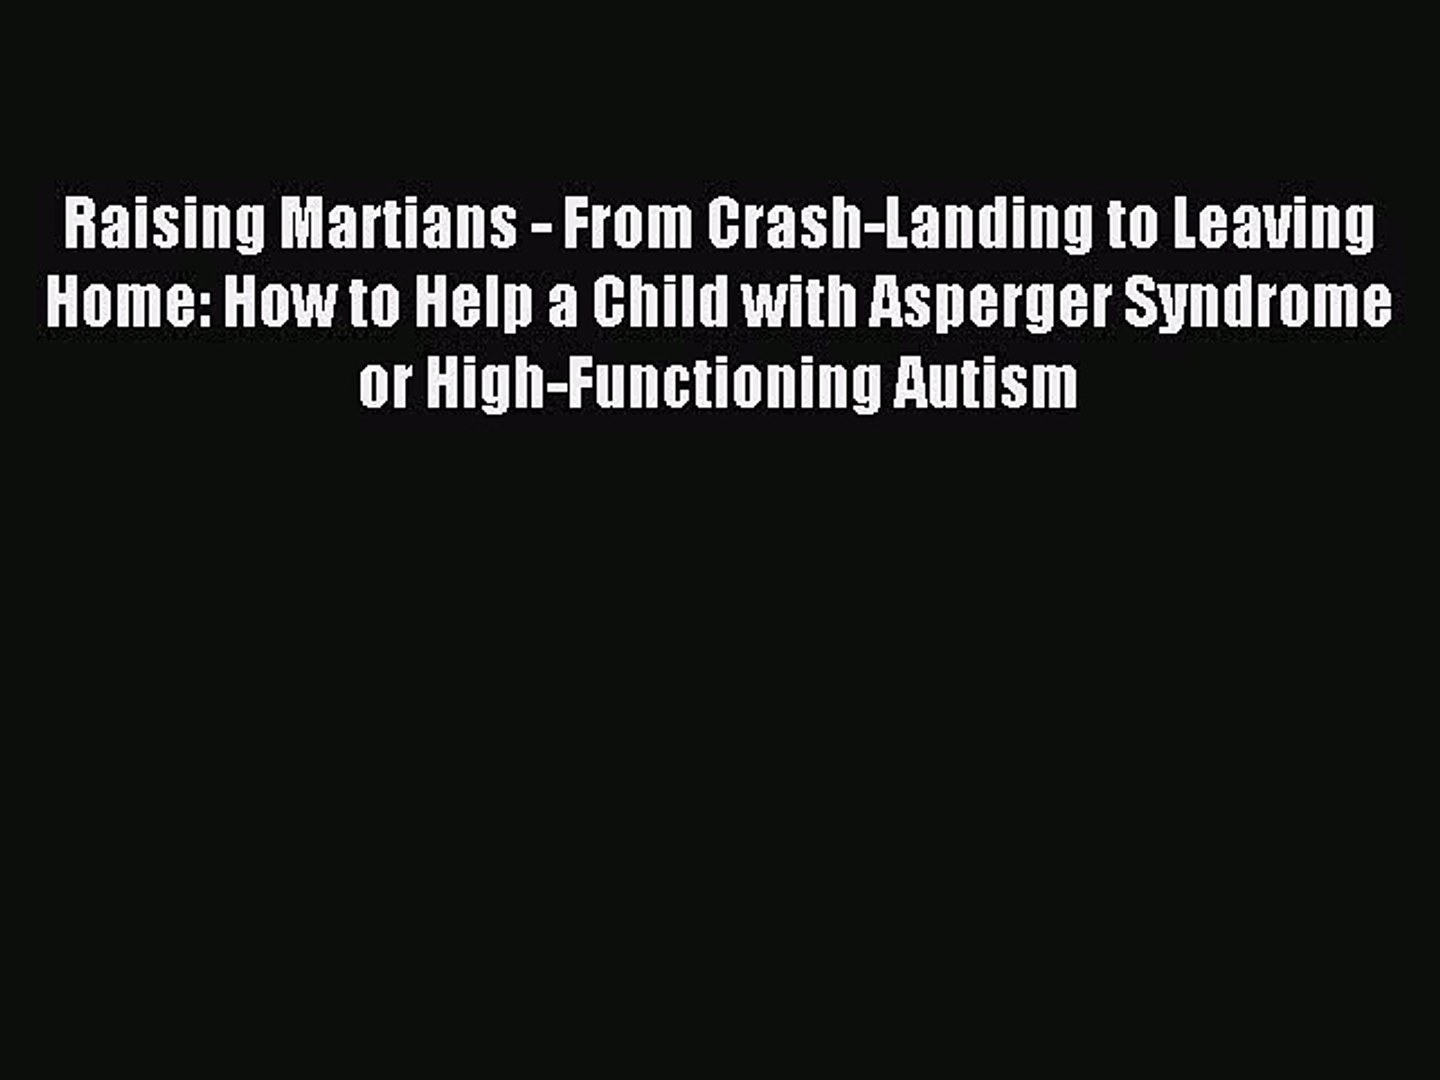 Download Raising Martians - From Crash-Landing to Leaving Home: How to Help a Child with Asperger